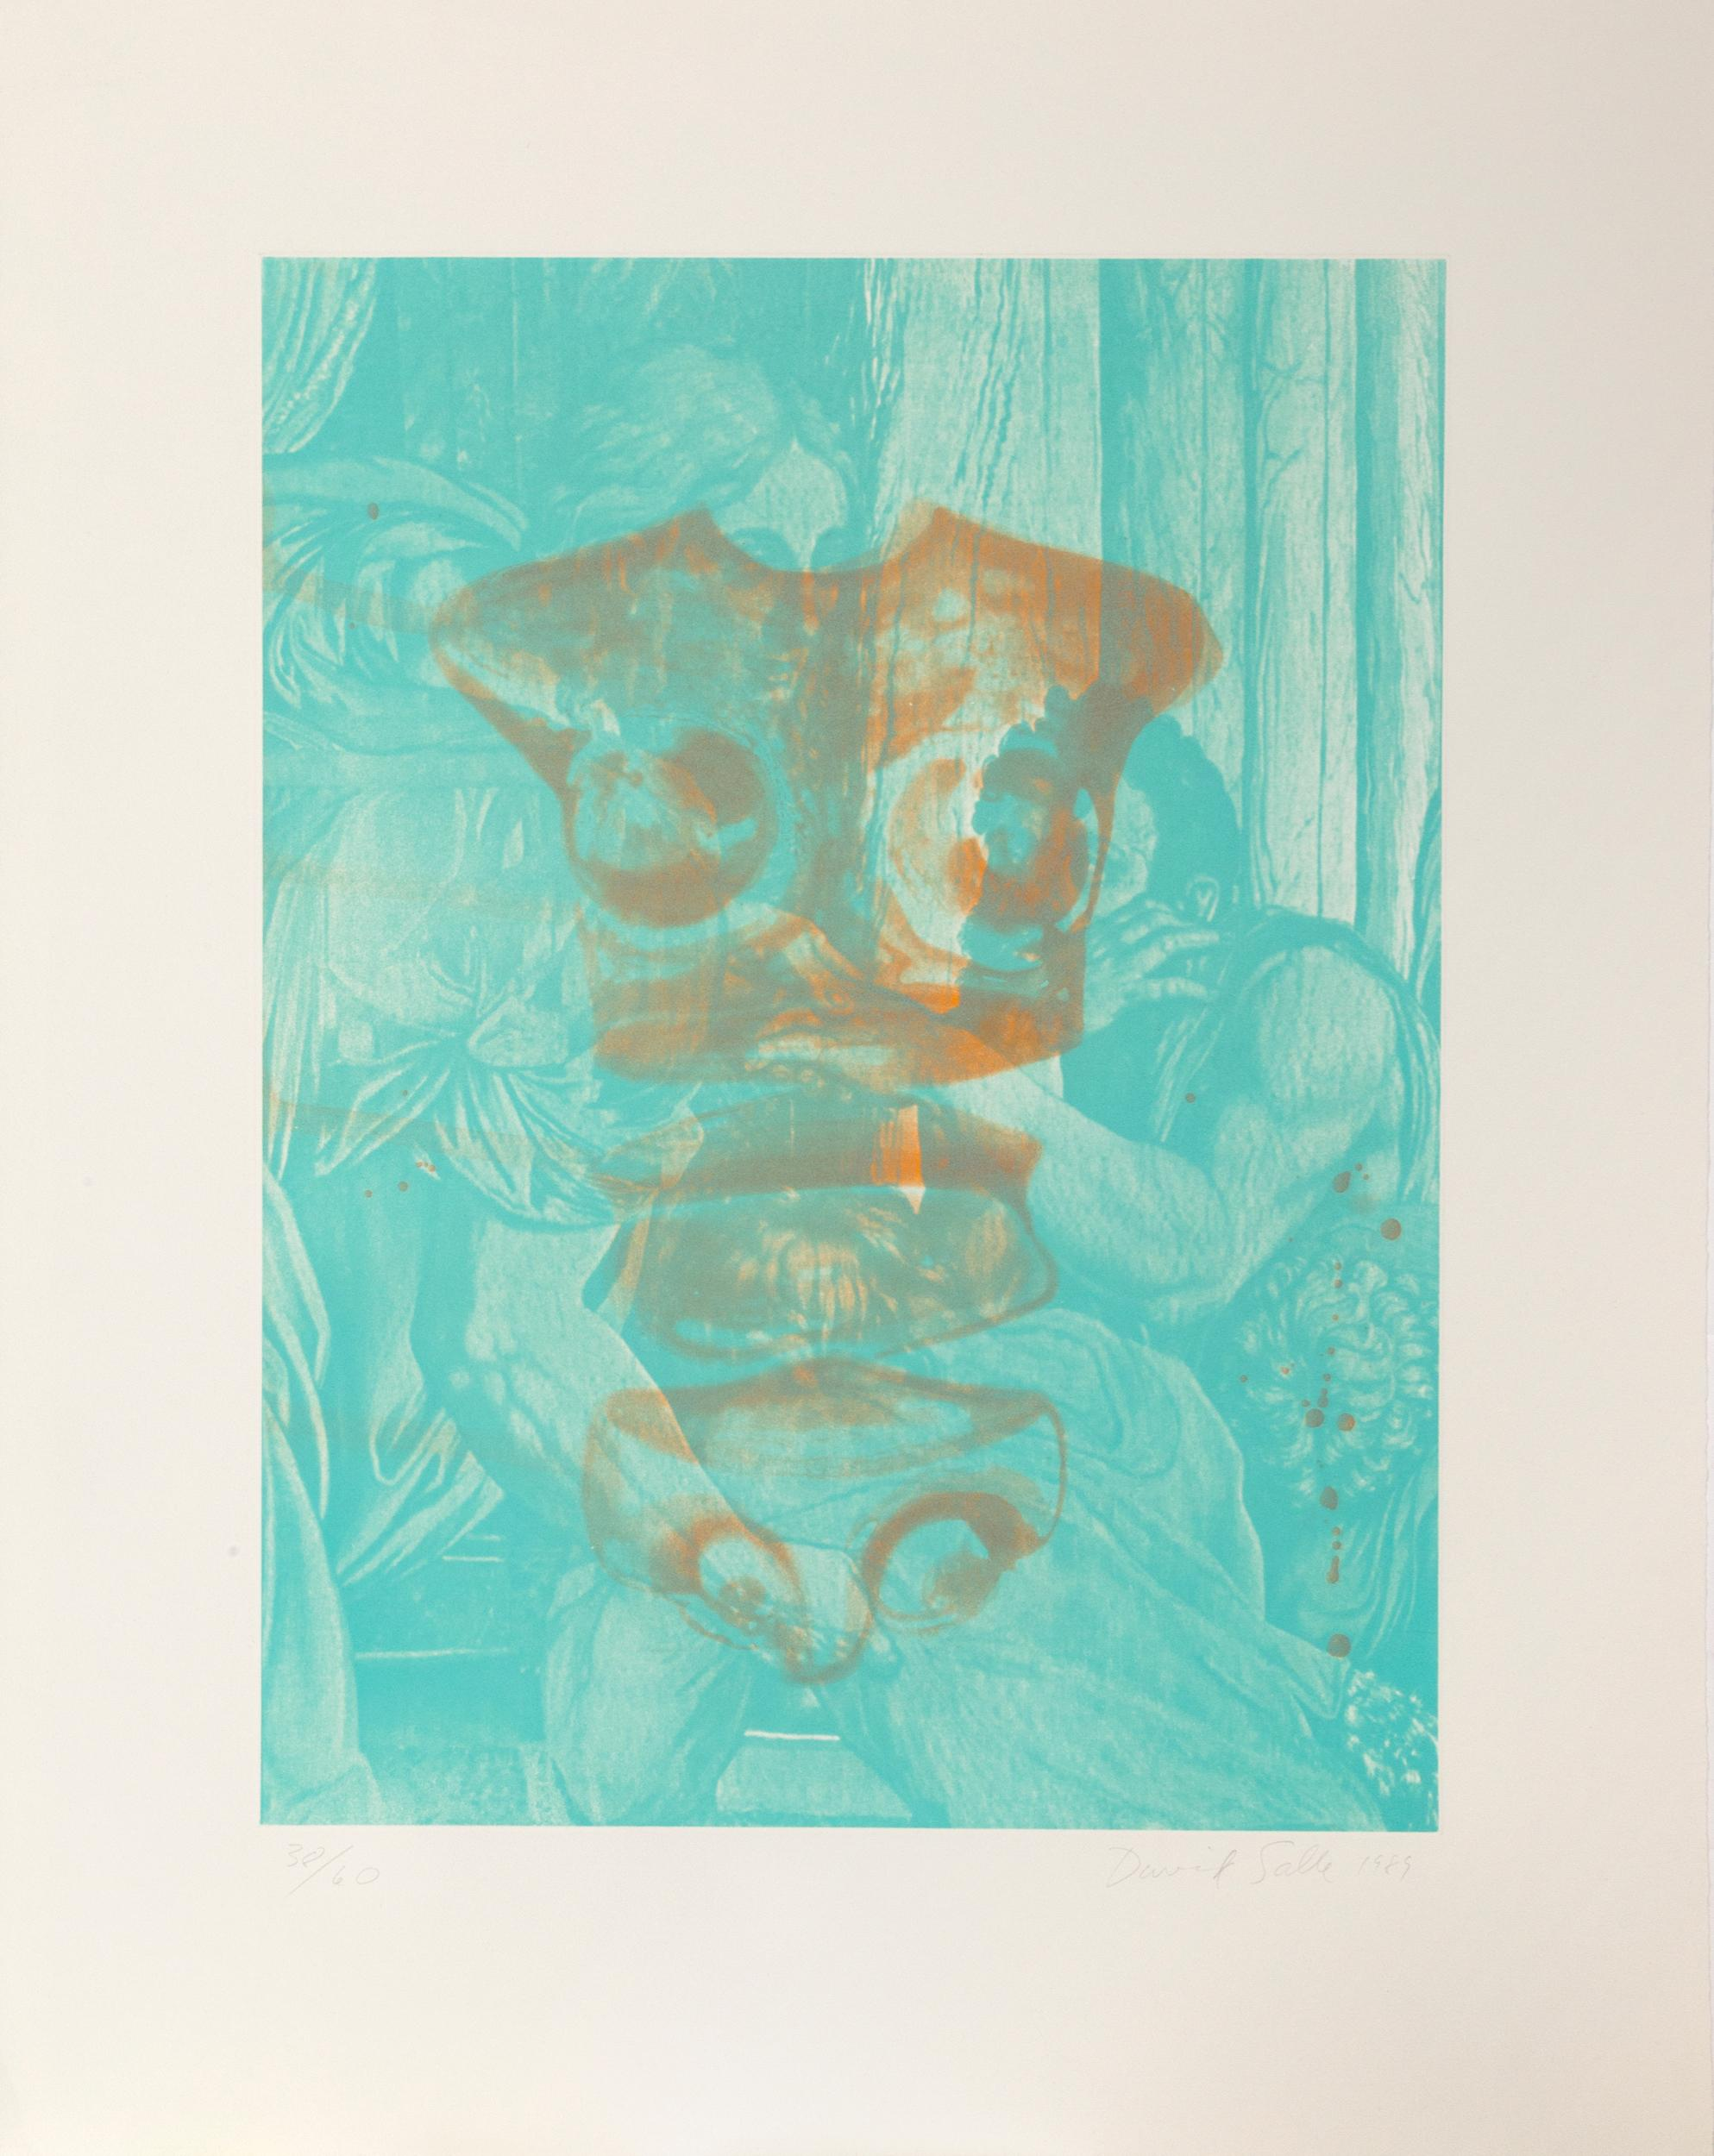 David Salle, Canfield Hatfield #1, Aquatint, spit-bite, and photo-etching